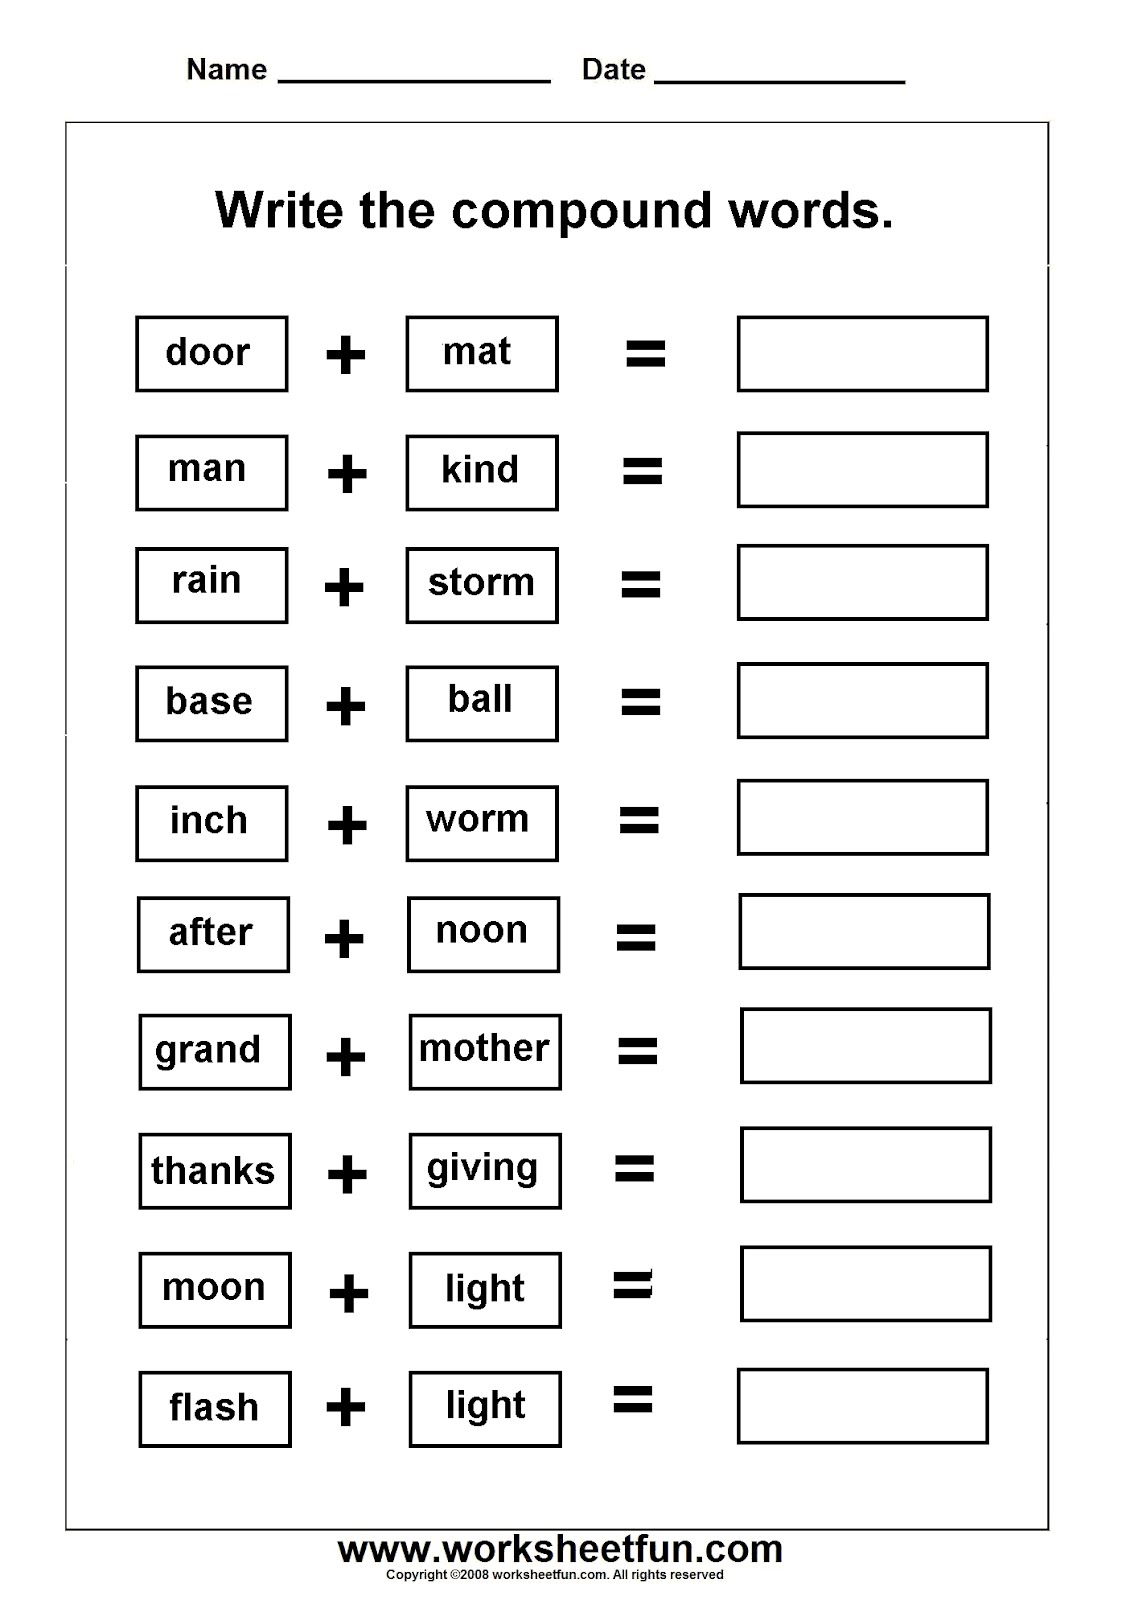 Compound Words Worksheets Preschool Worksheets For All